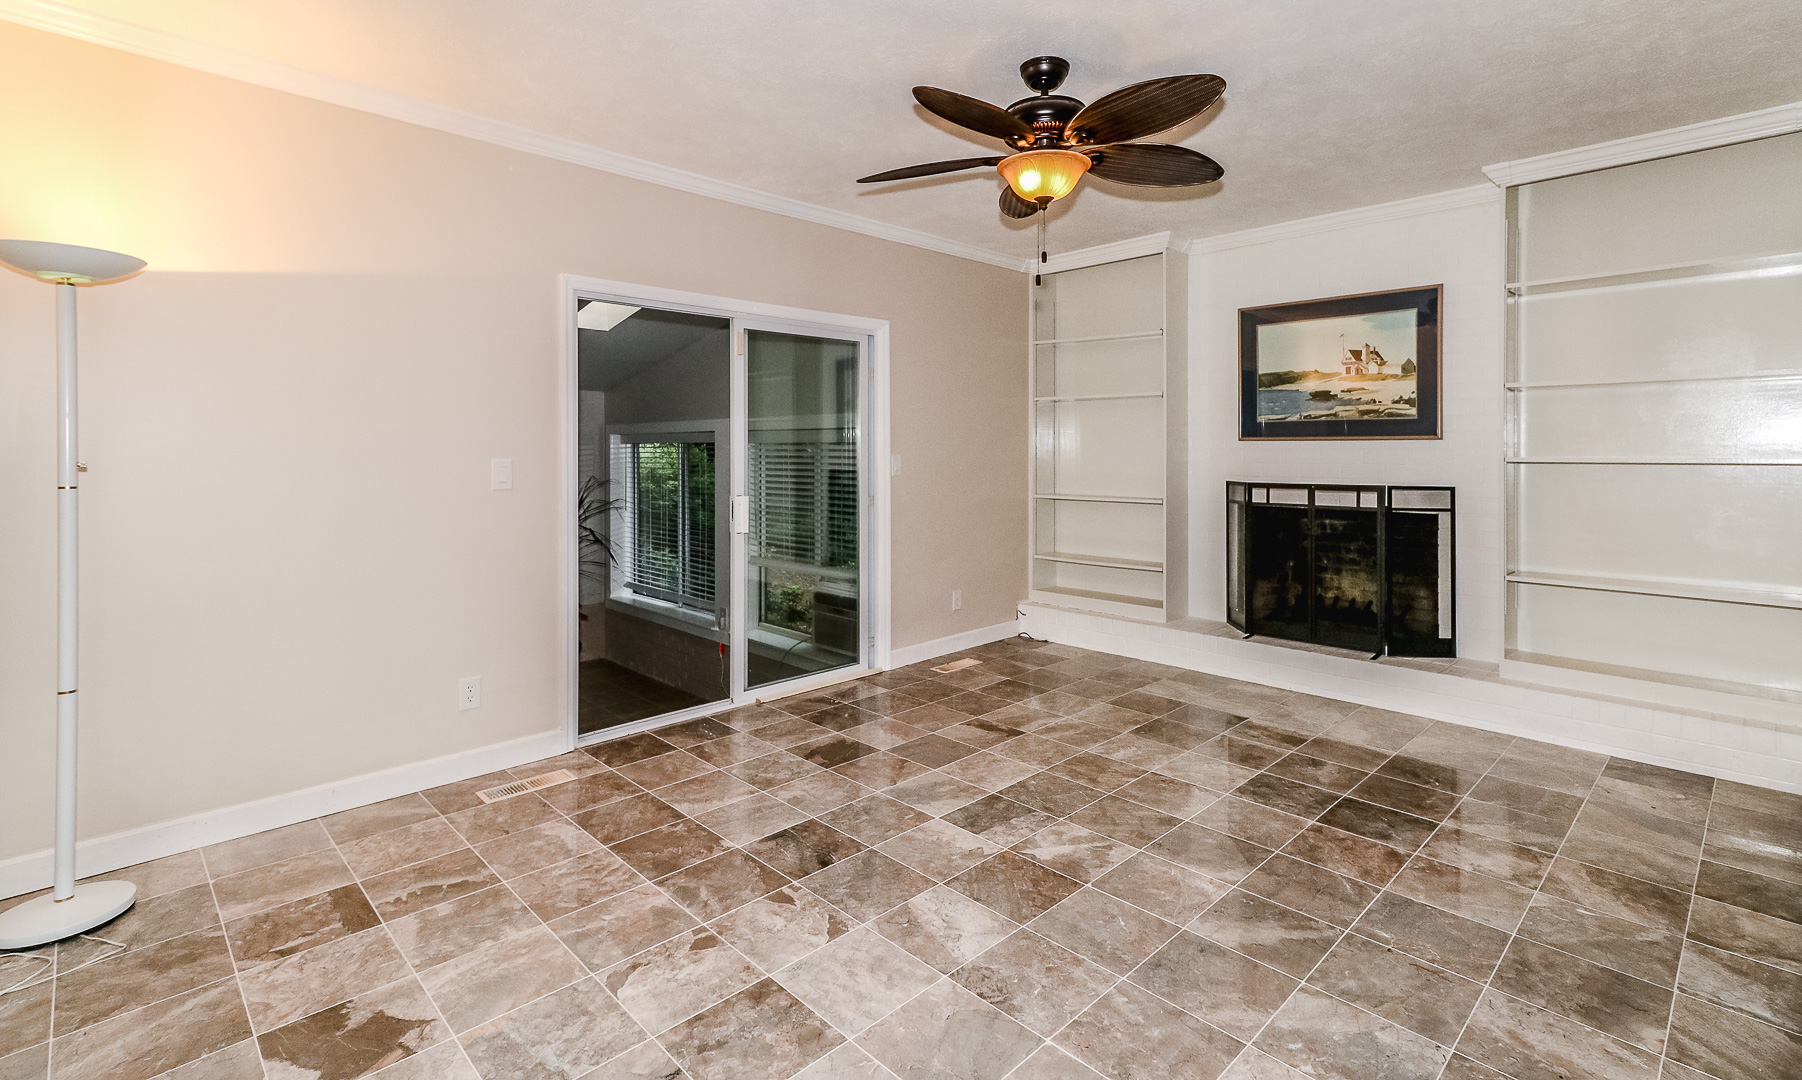 19. Formal Lving Room with Buil ins and Fireplace updated MLS